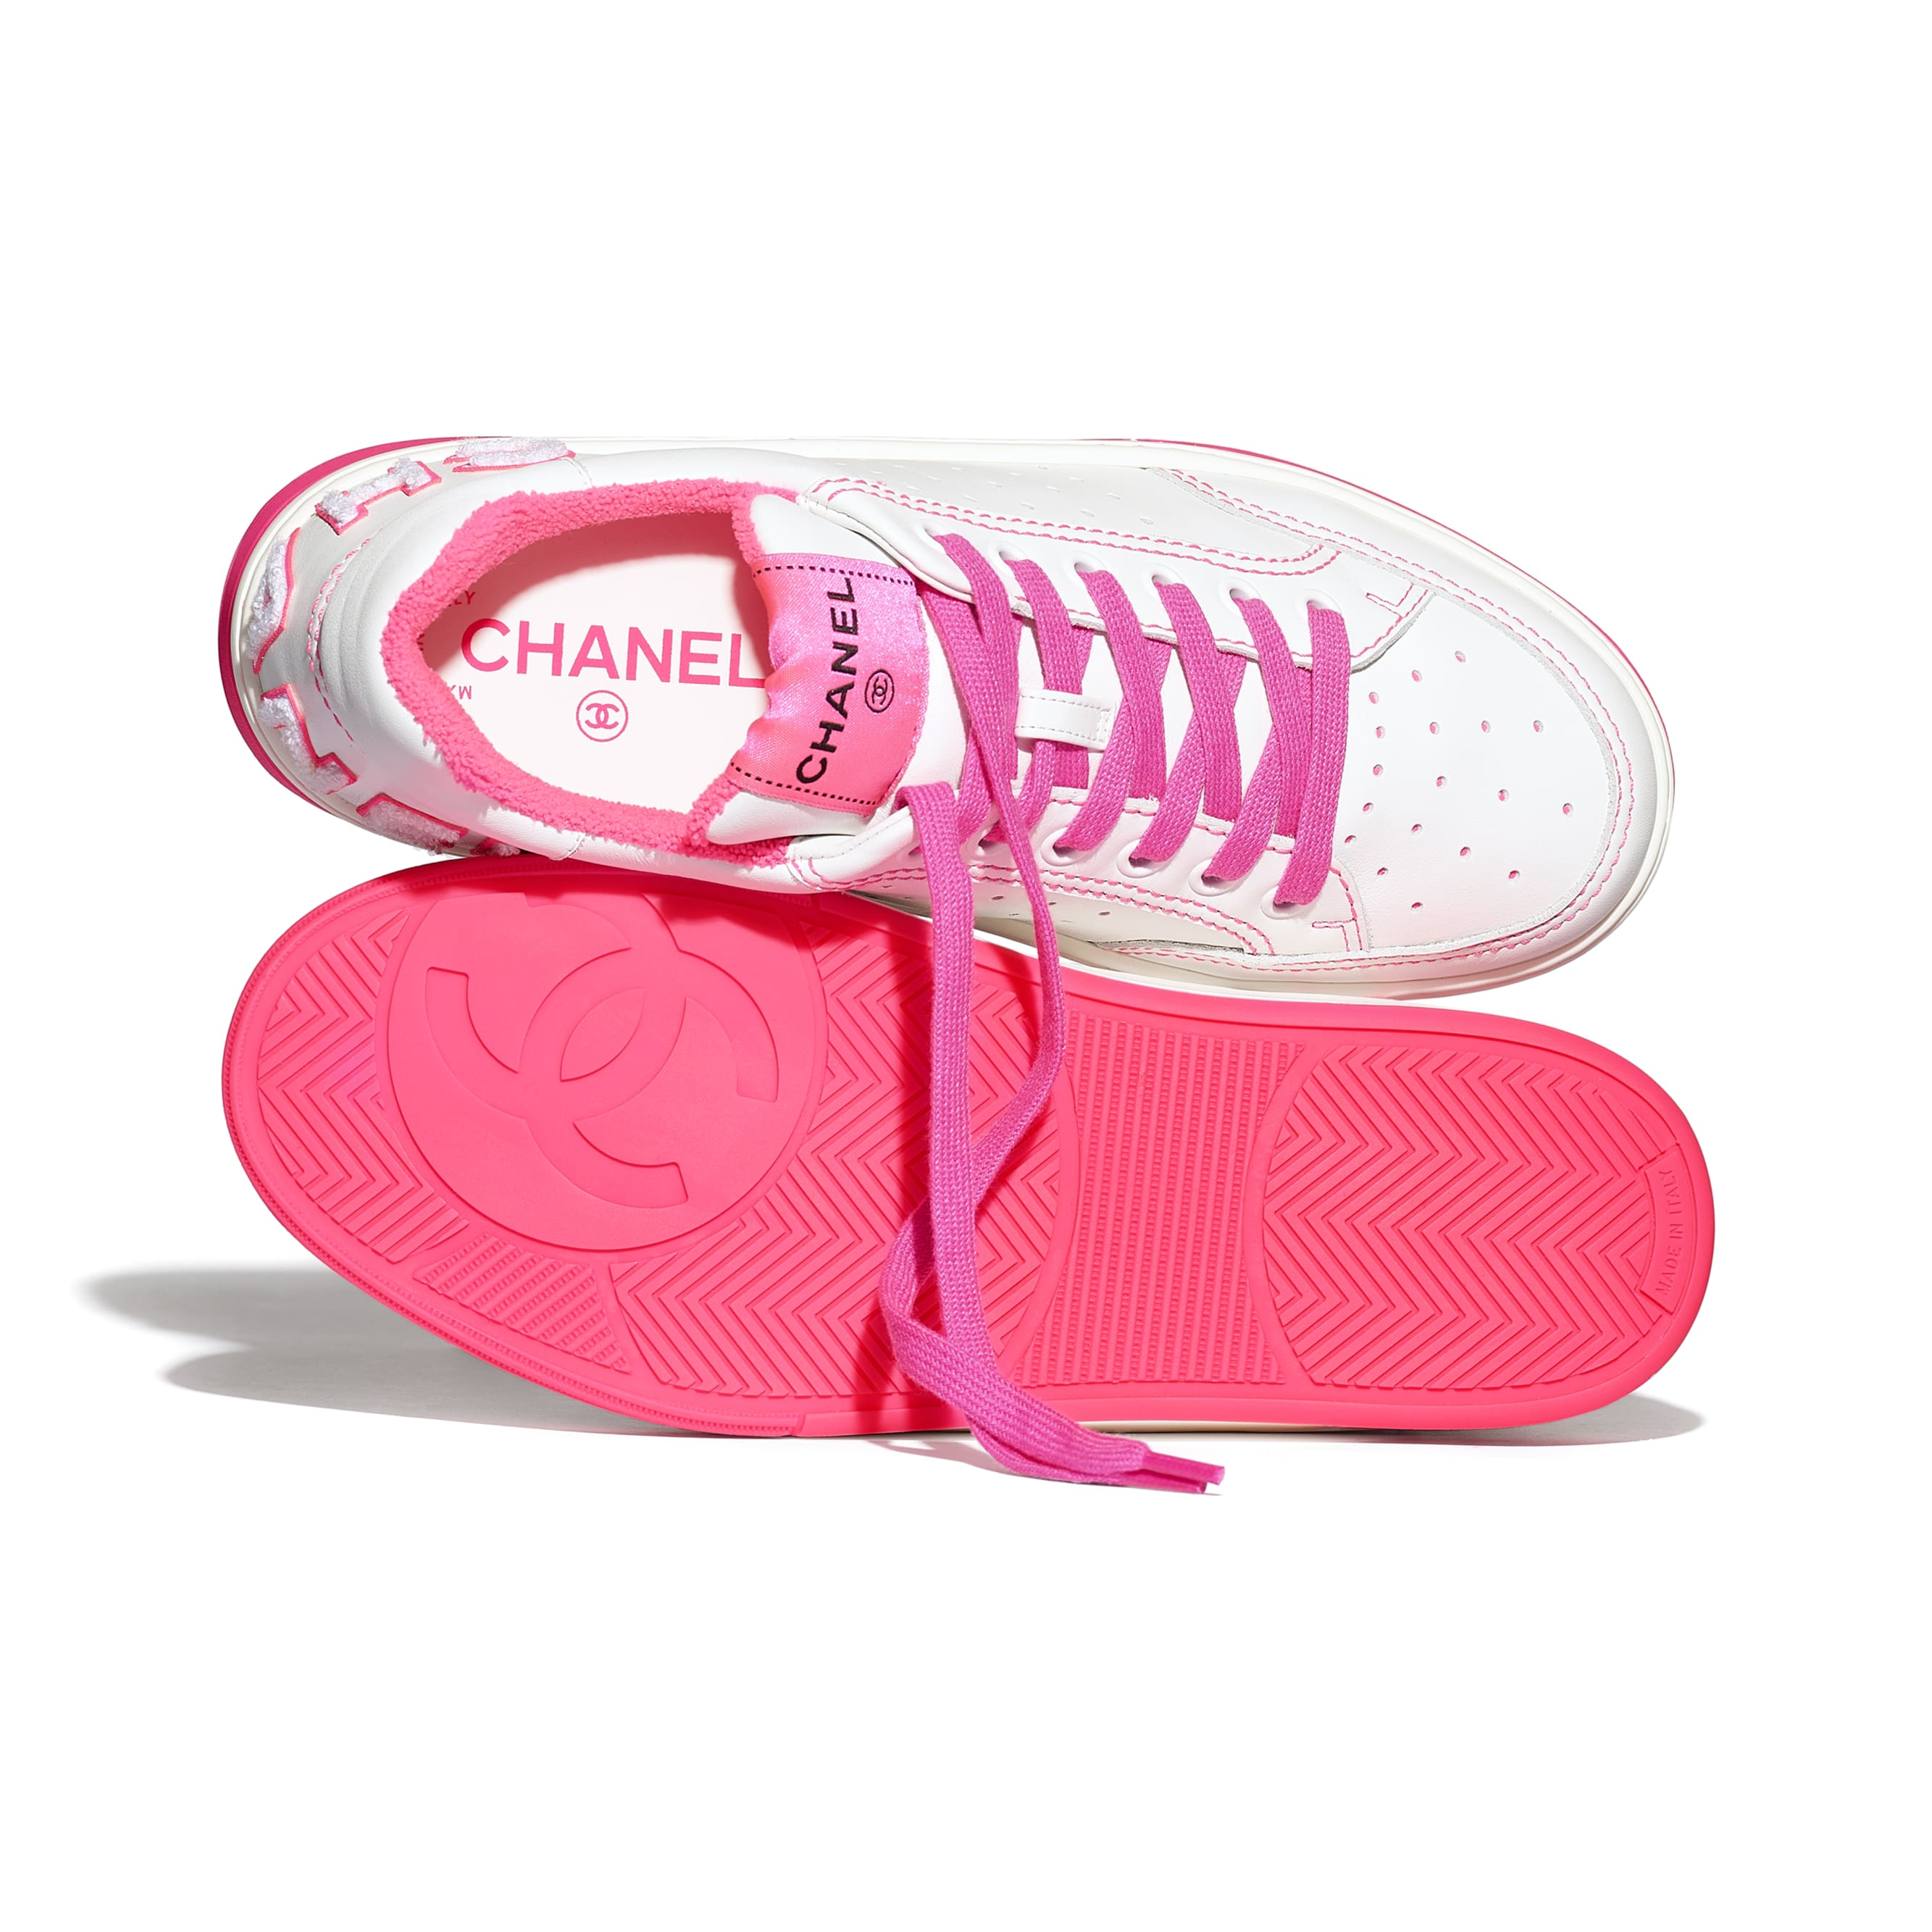 Trainers - White & Fuchsia - Calfskin - Extra view - see standard sized version